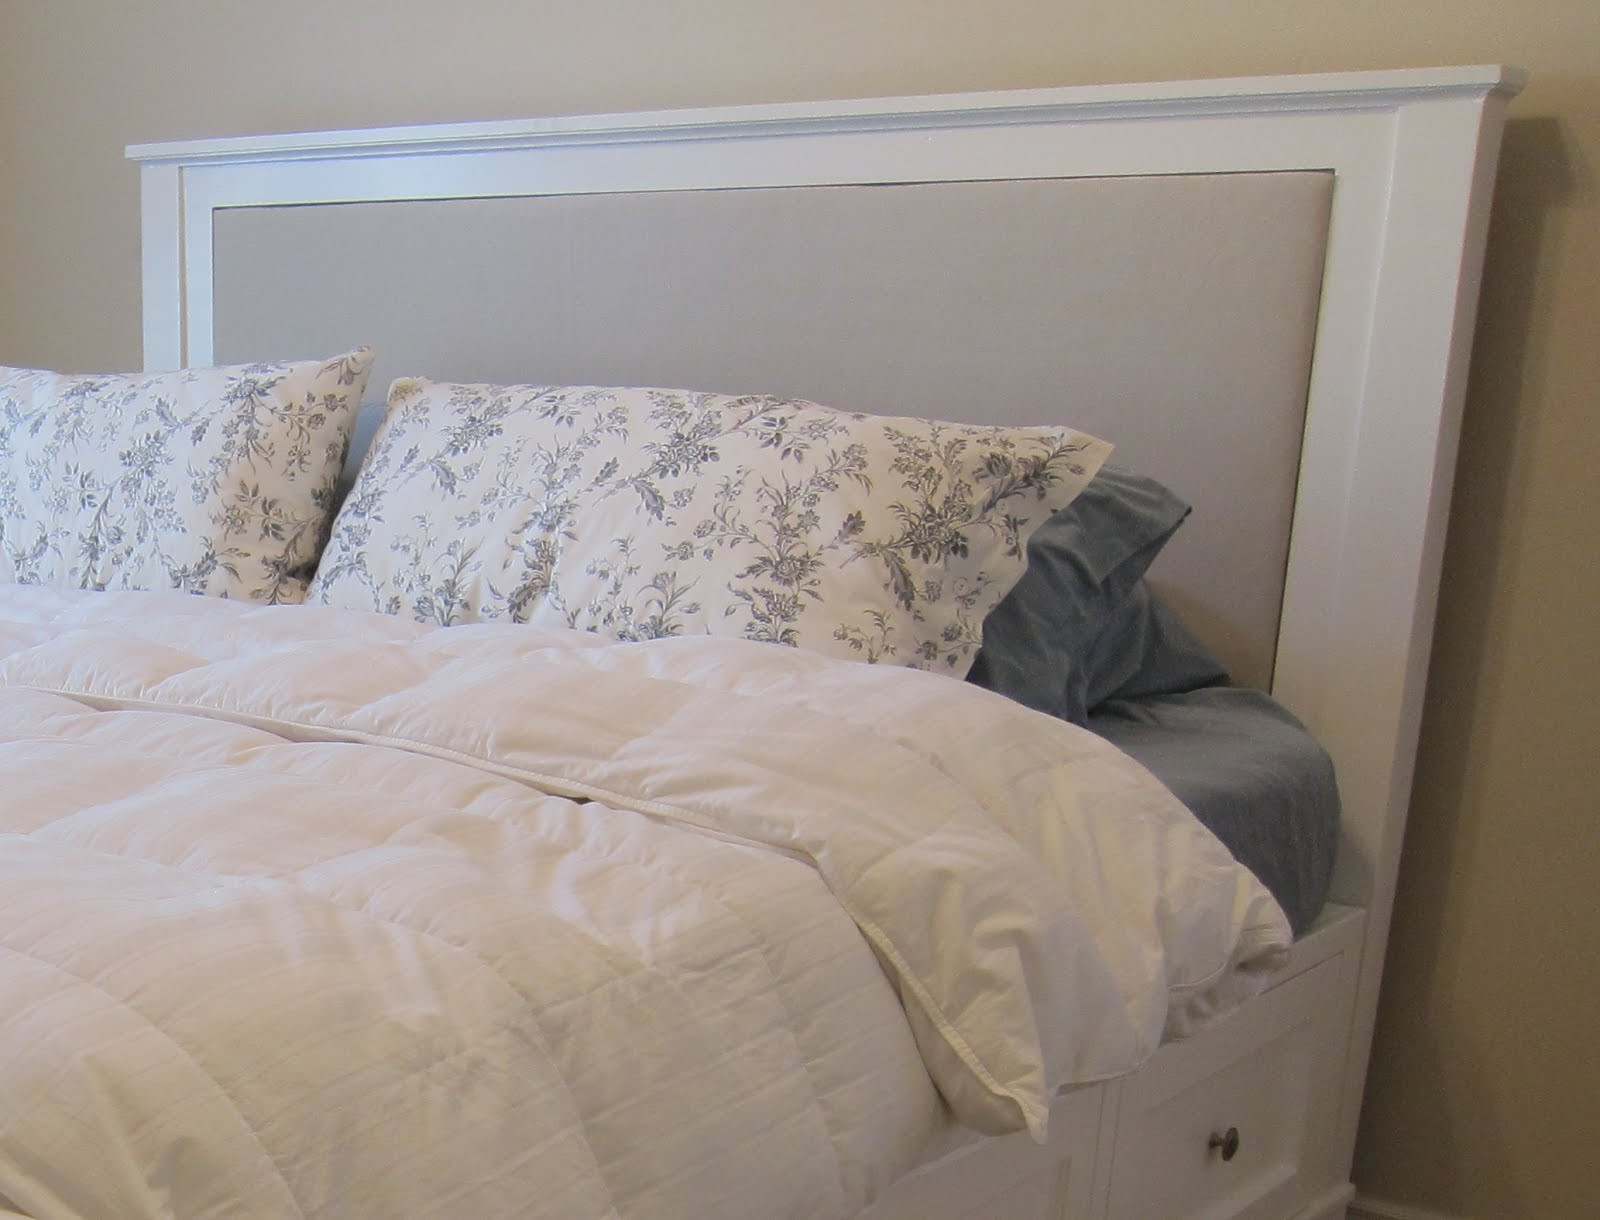 Best ideas about King Size Bed Frame DIY . Save or Pin DIY King Size Bed Frame Part 4 Headboard and Finished Now.